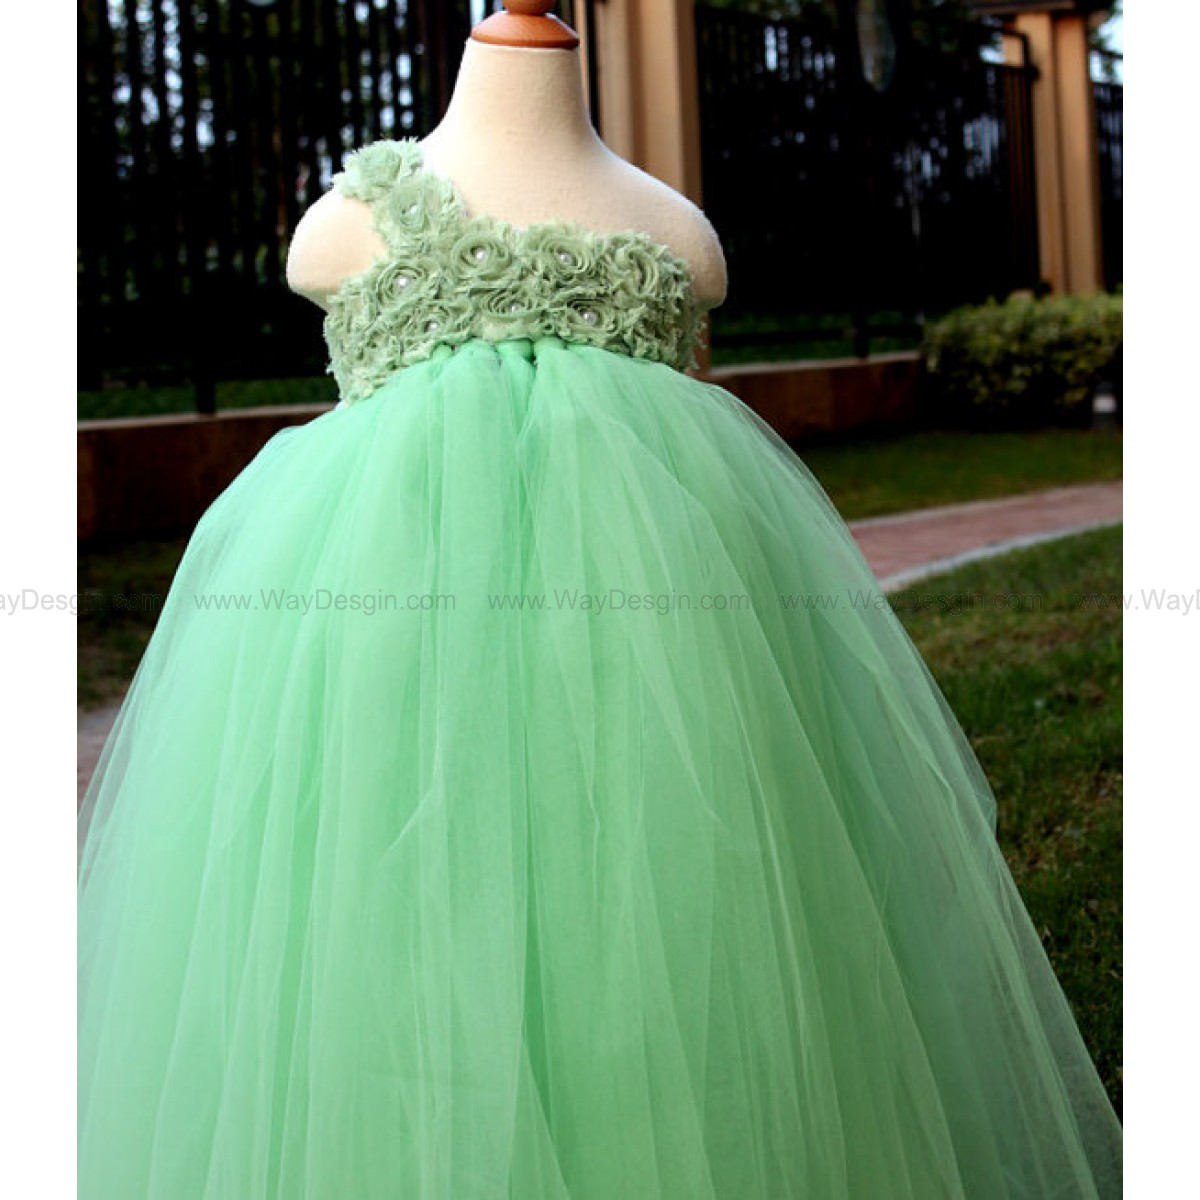 Flower girl dress Mint tutu dress baby dress toddler birthday dress wedding dress newborn